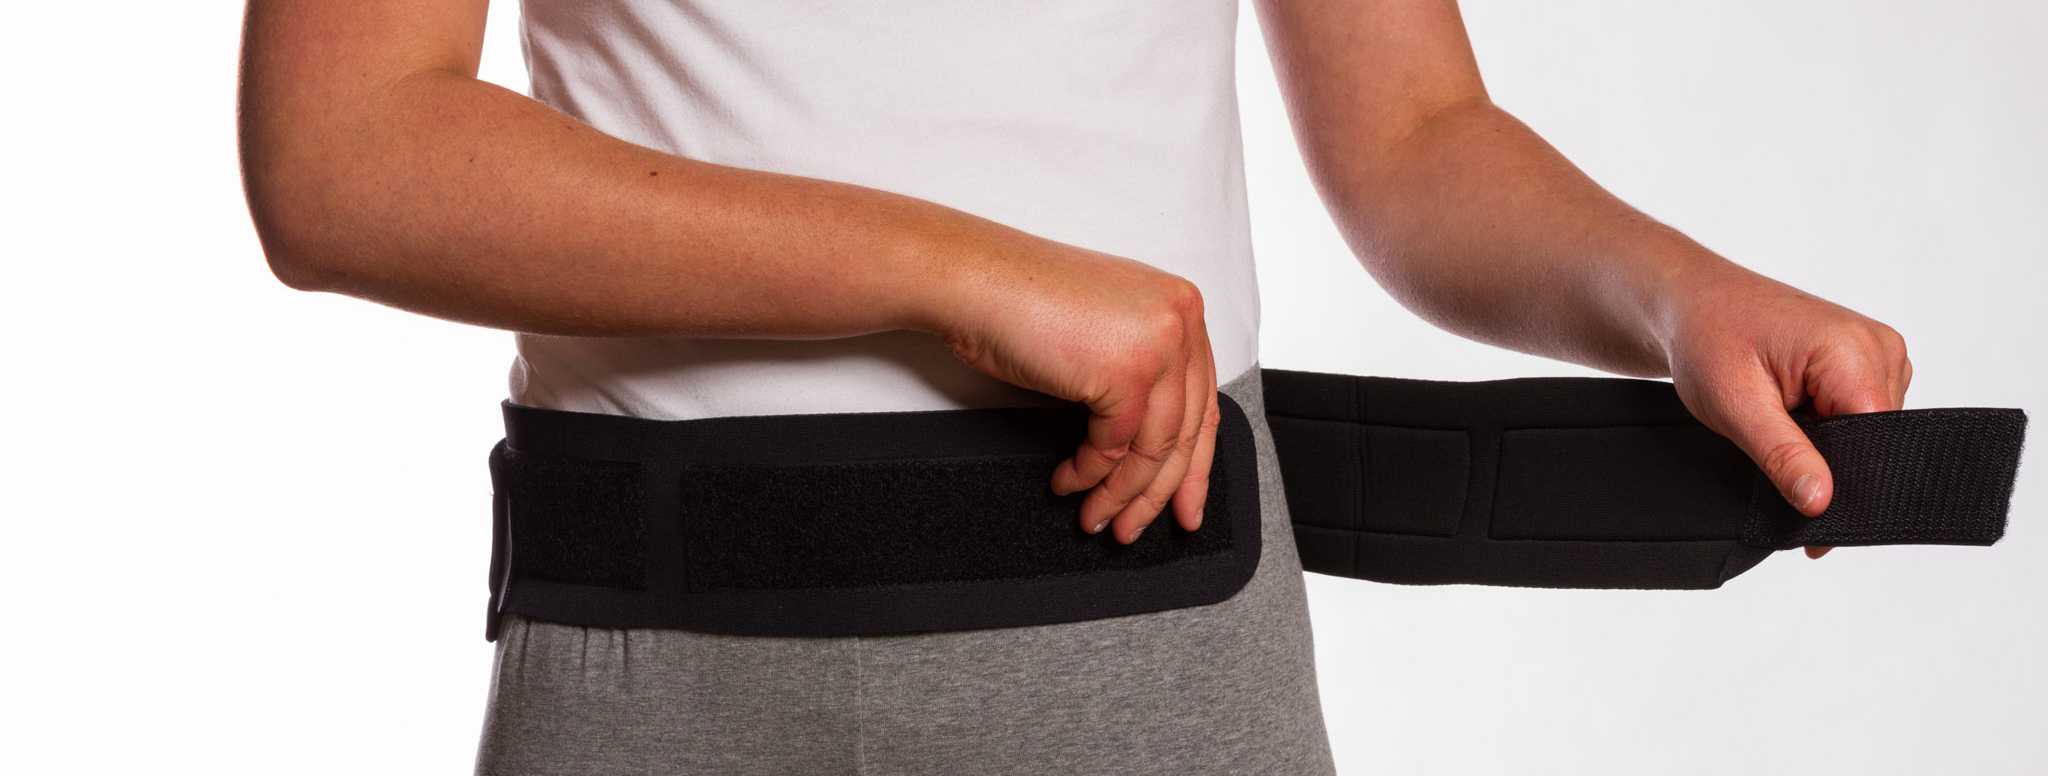 Sacroiliac Belt, Black, $49.95 alternative product image 3